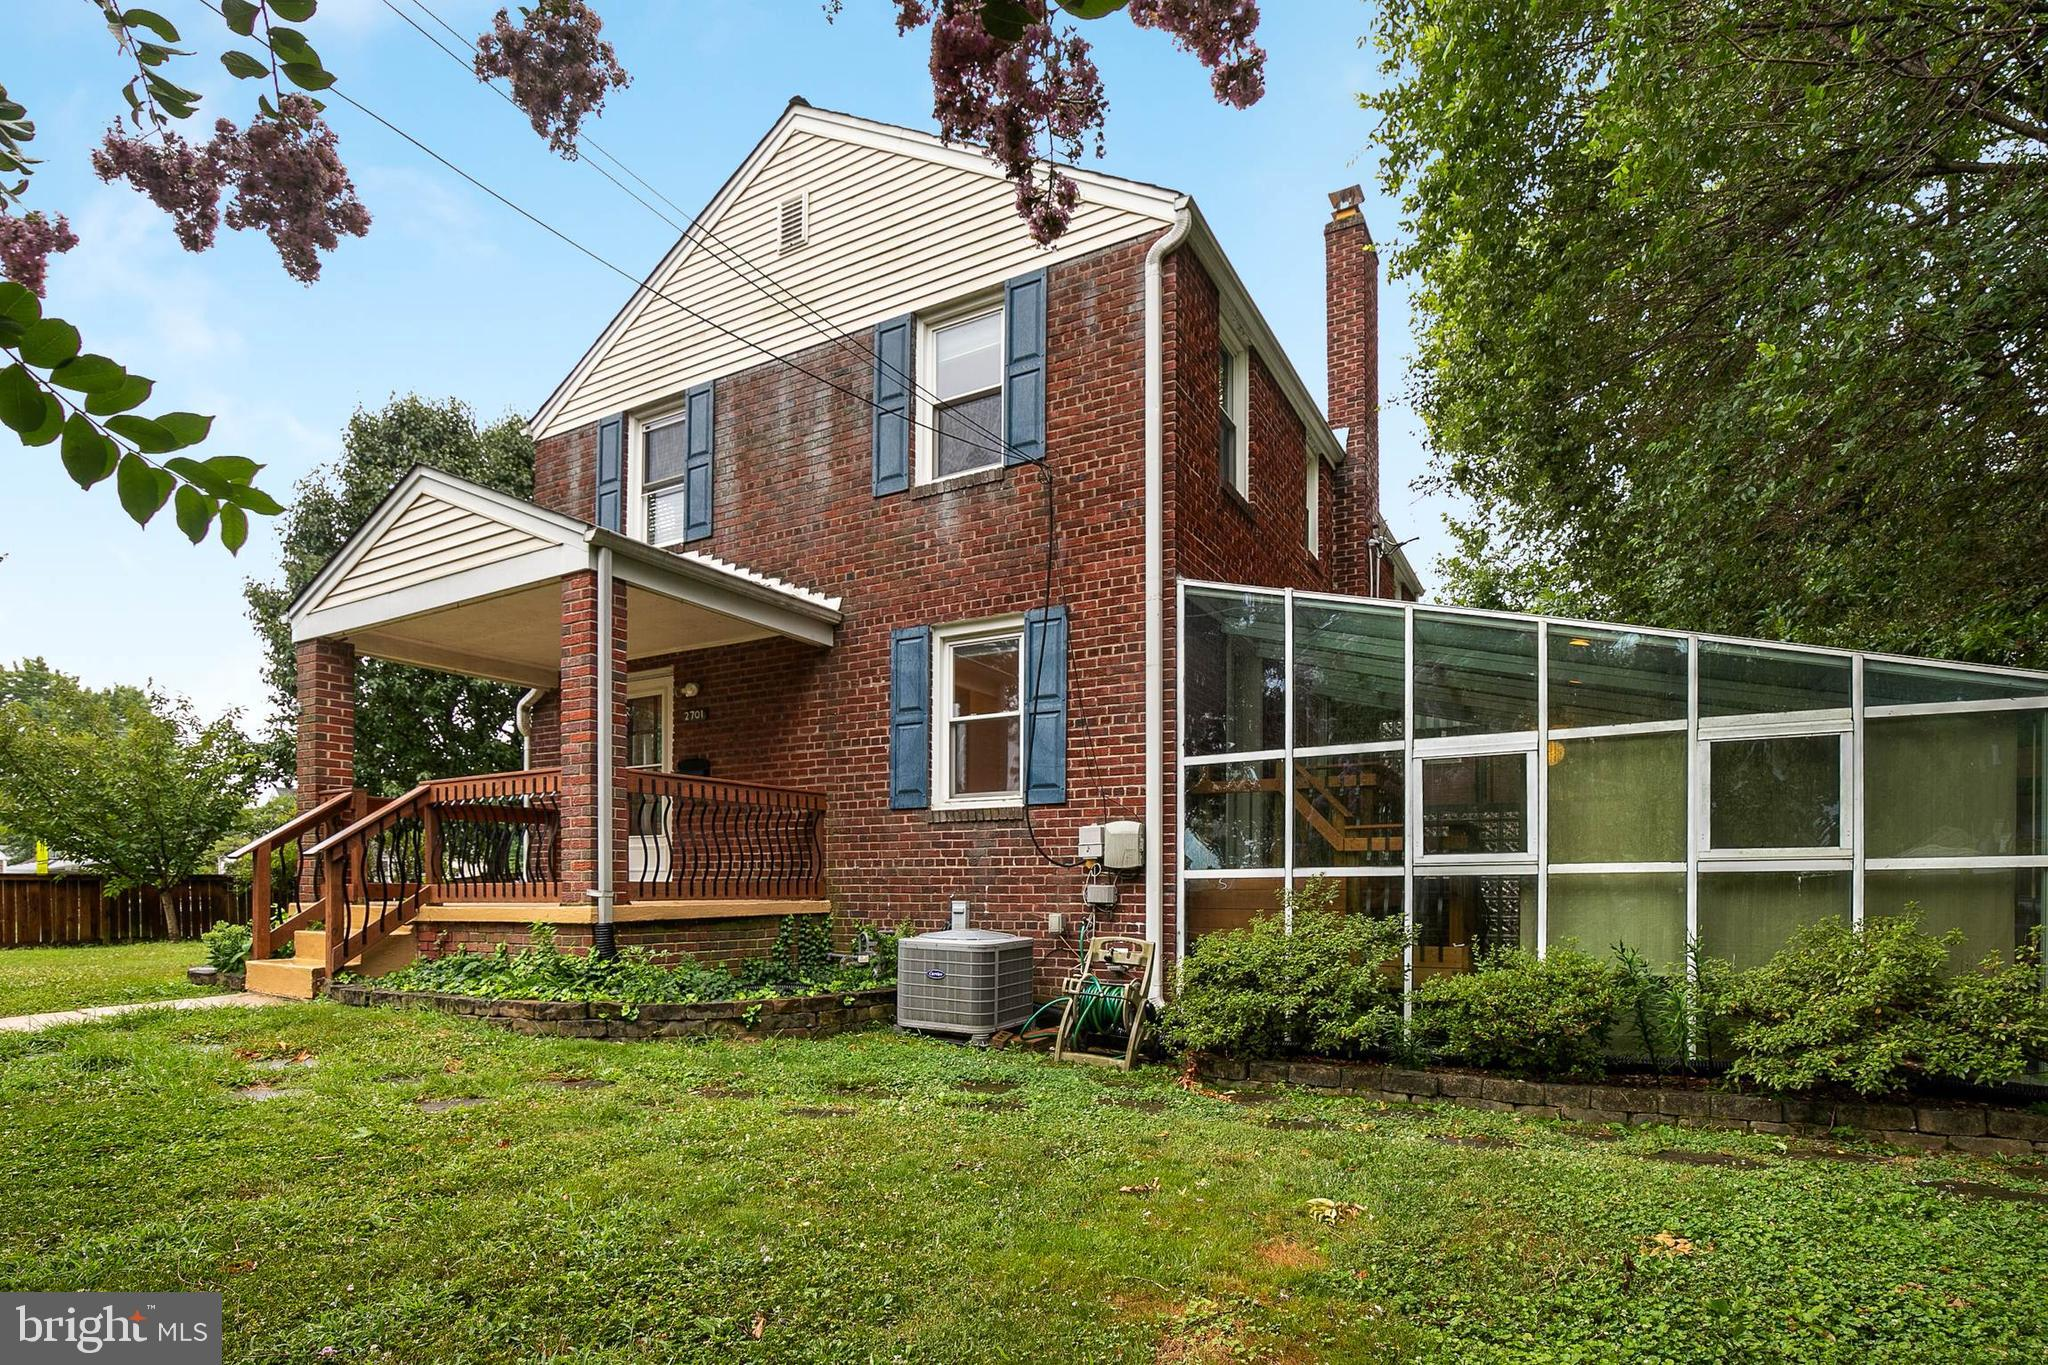 Super charming duplex on a fully fenced corner lot. Off street parking.  The house has an amazing sunroom off of the side that adds to the usable living space.  There is a cozy patio just outside as well.  All the charm off Jefferson Manor can be yours.  Don't miss out this gem is going to go quickly.